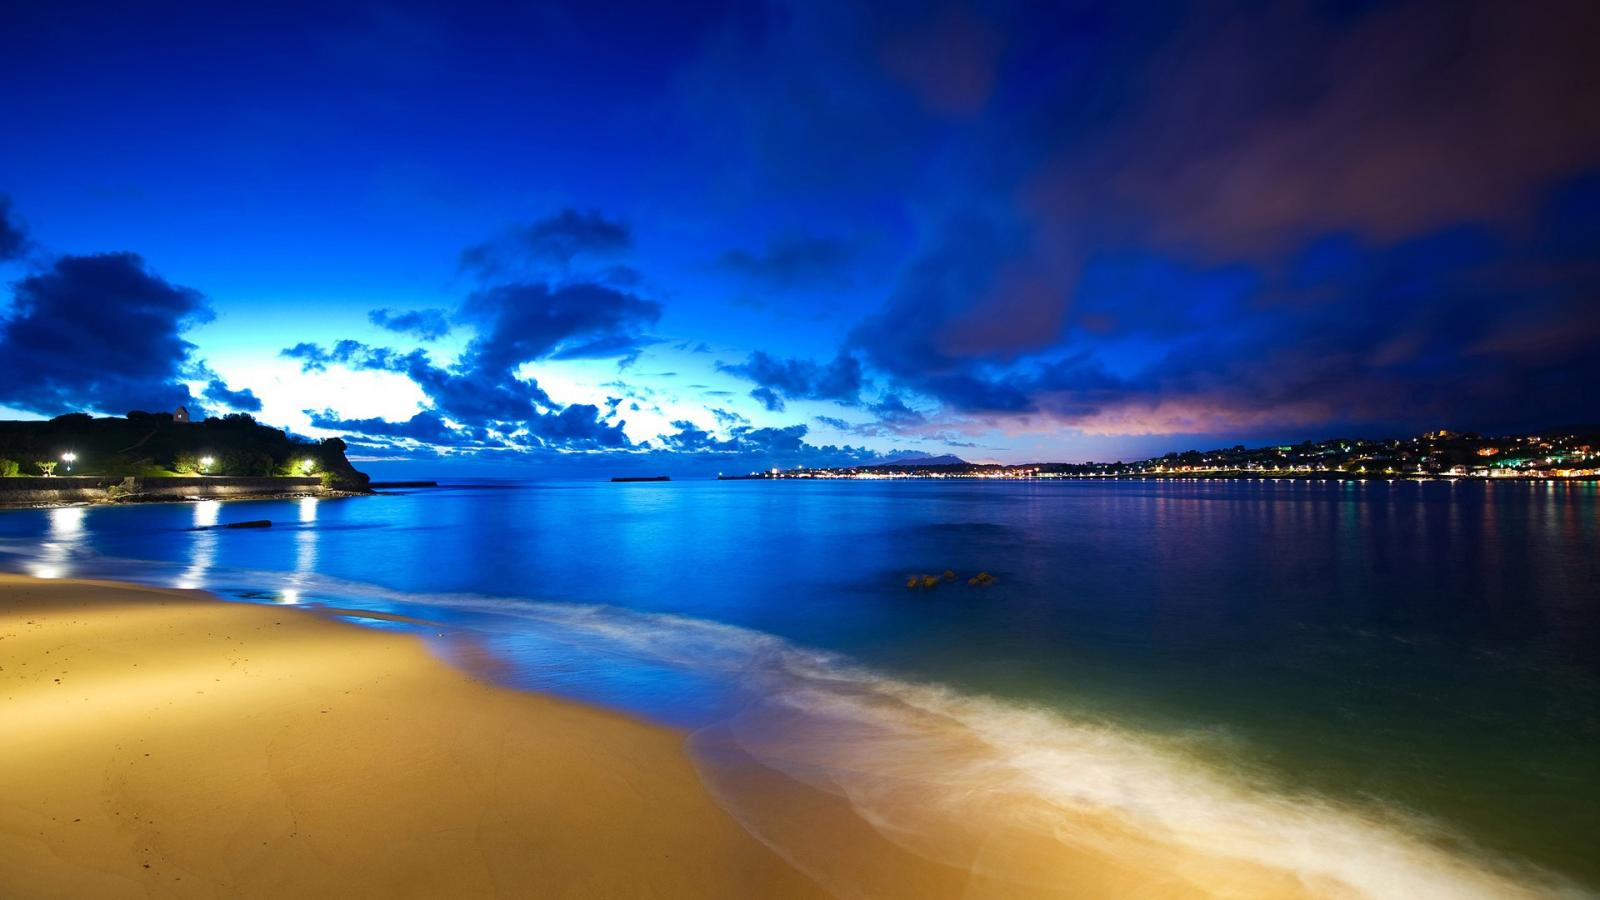 Hd Night Beach Wallpapers Images amp Pictures   Becuo 1600x900